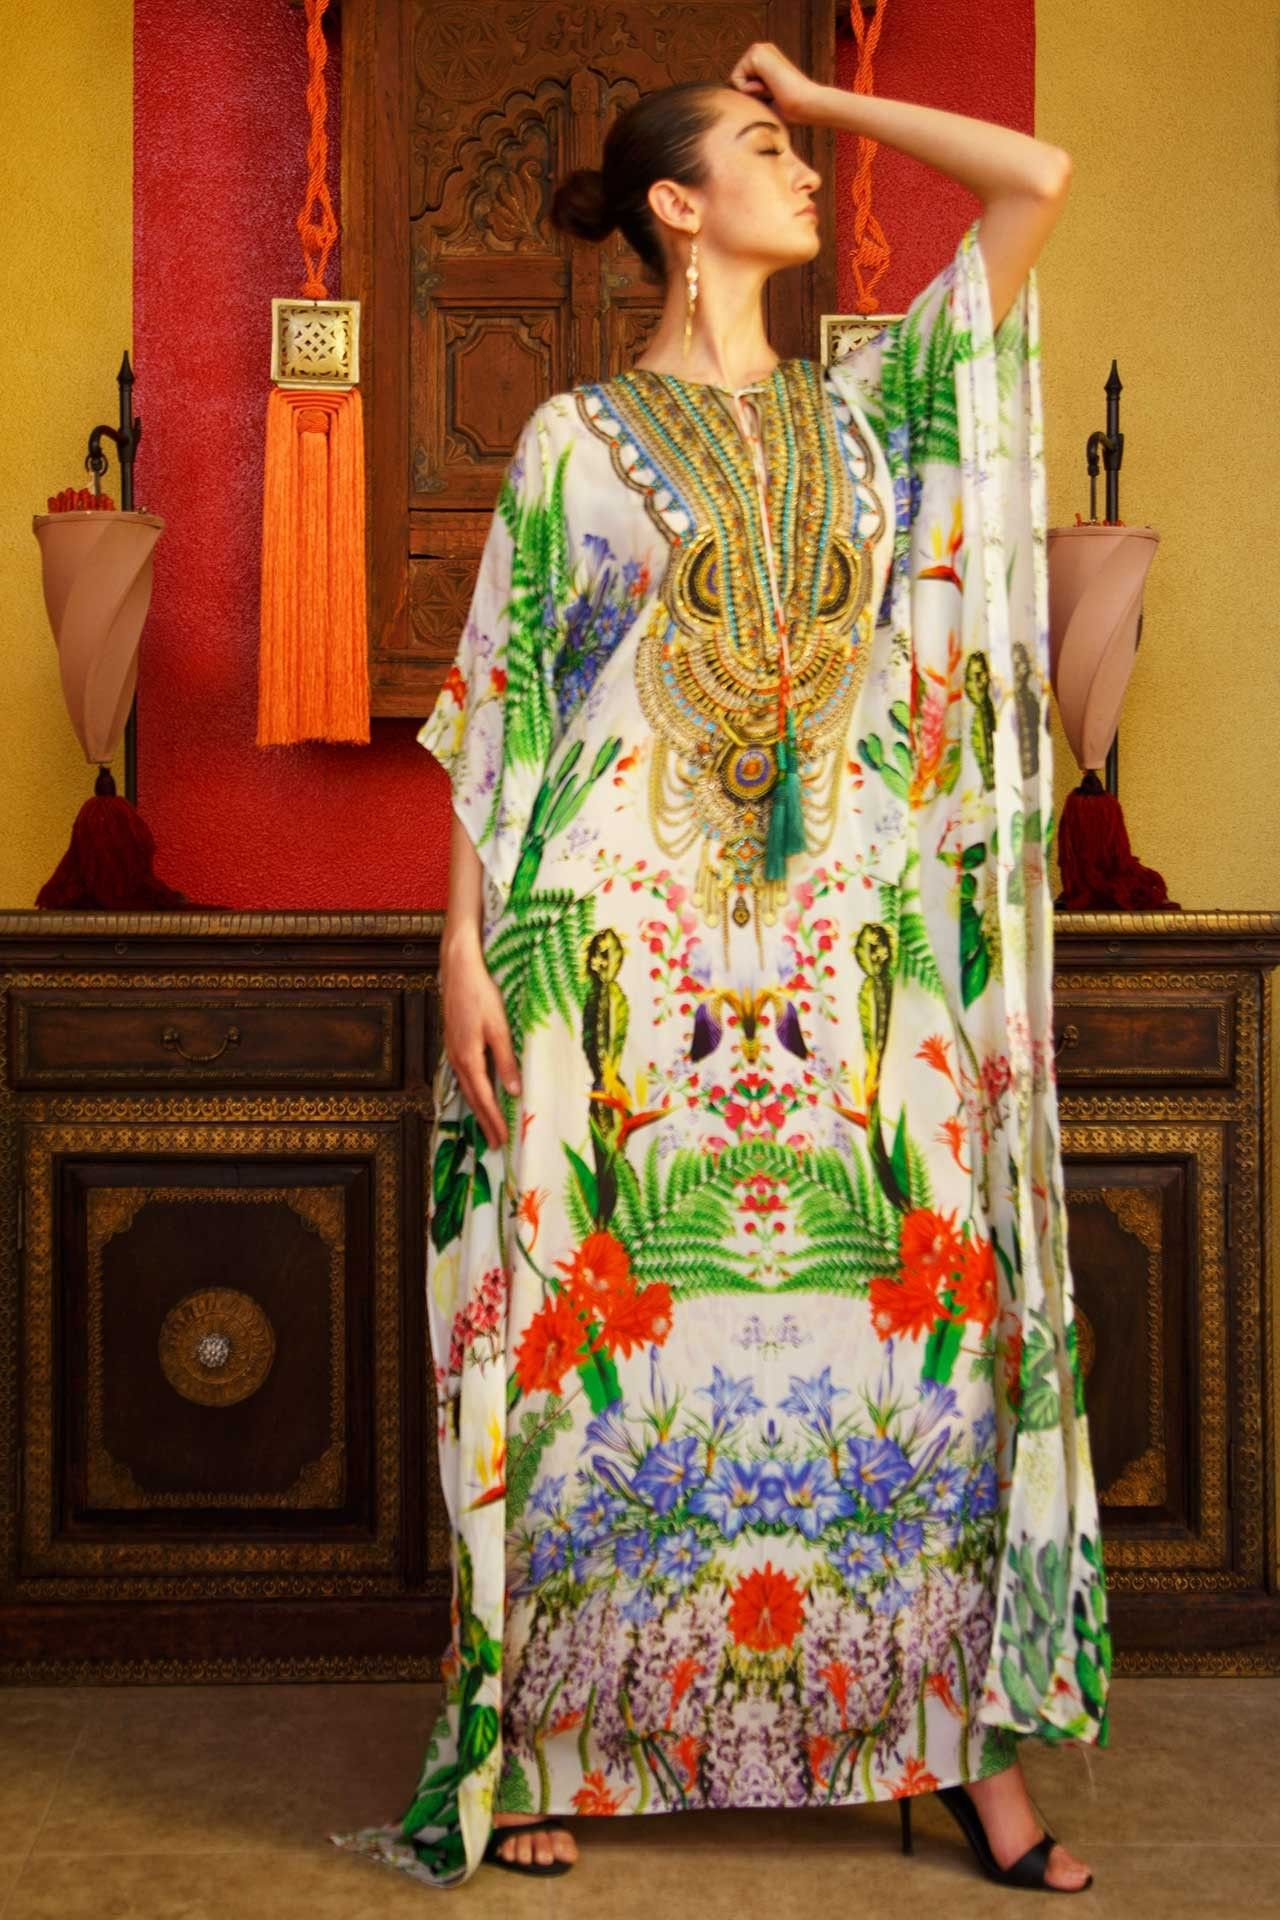 ac1d66344 White & Green Dress | Printed Kaftans Online | Up to 50% Off - Shahida  Parides®